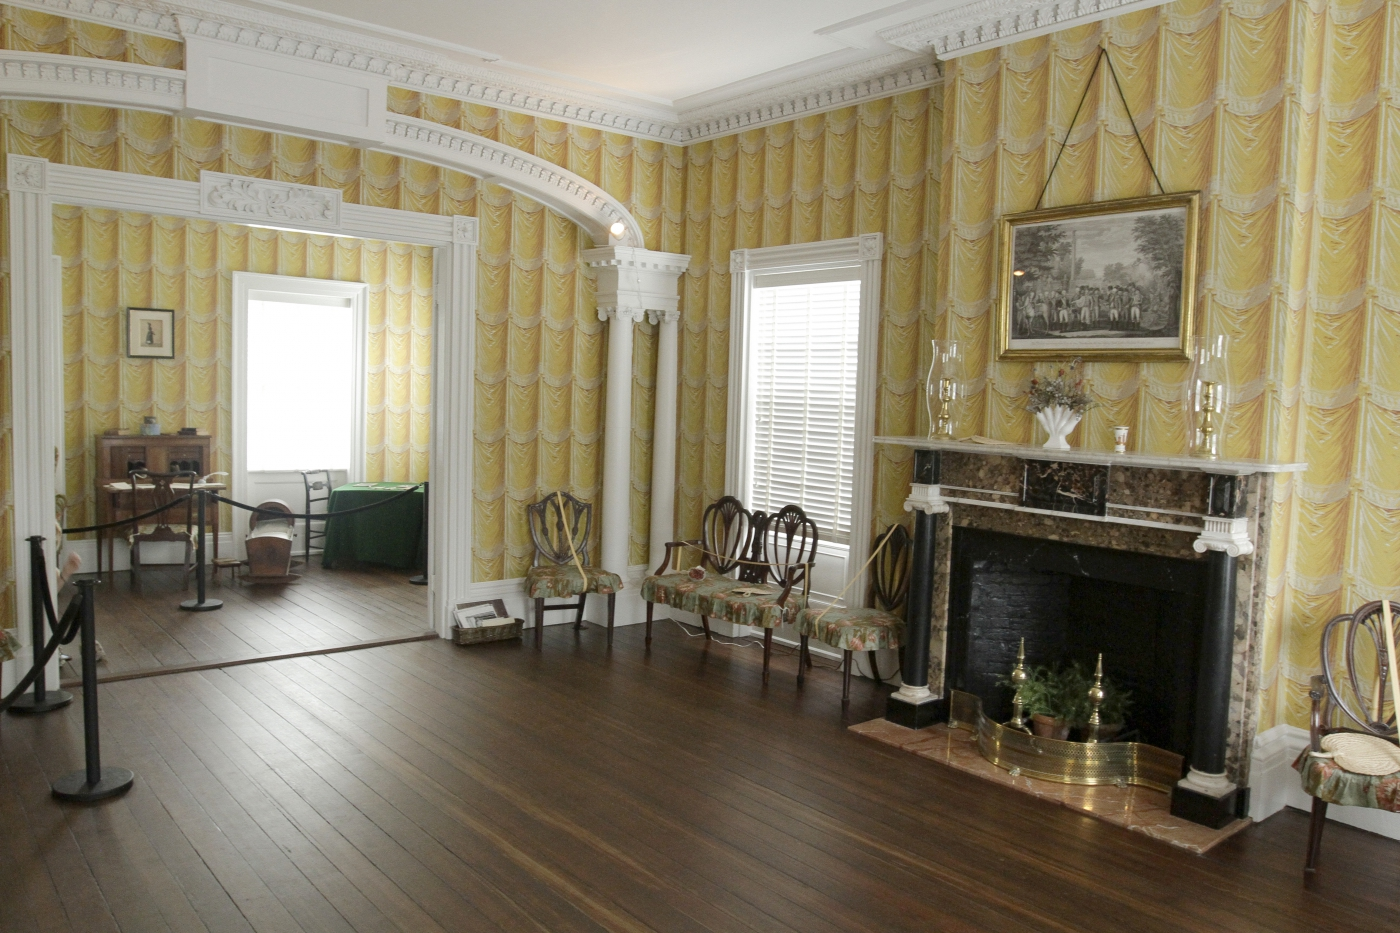 Savannah is full of historic homes open for tours.